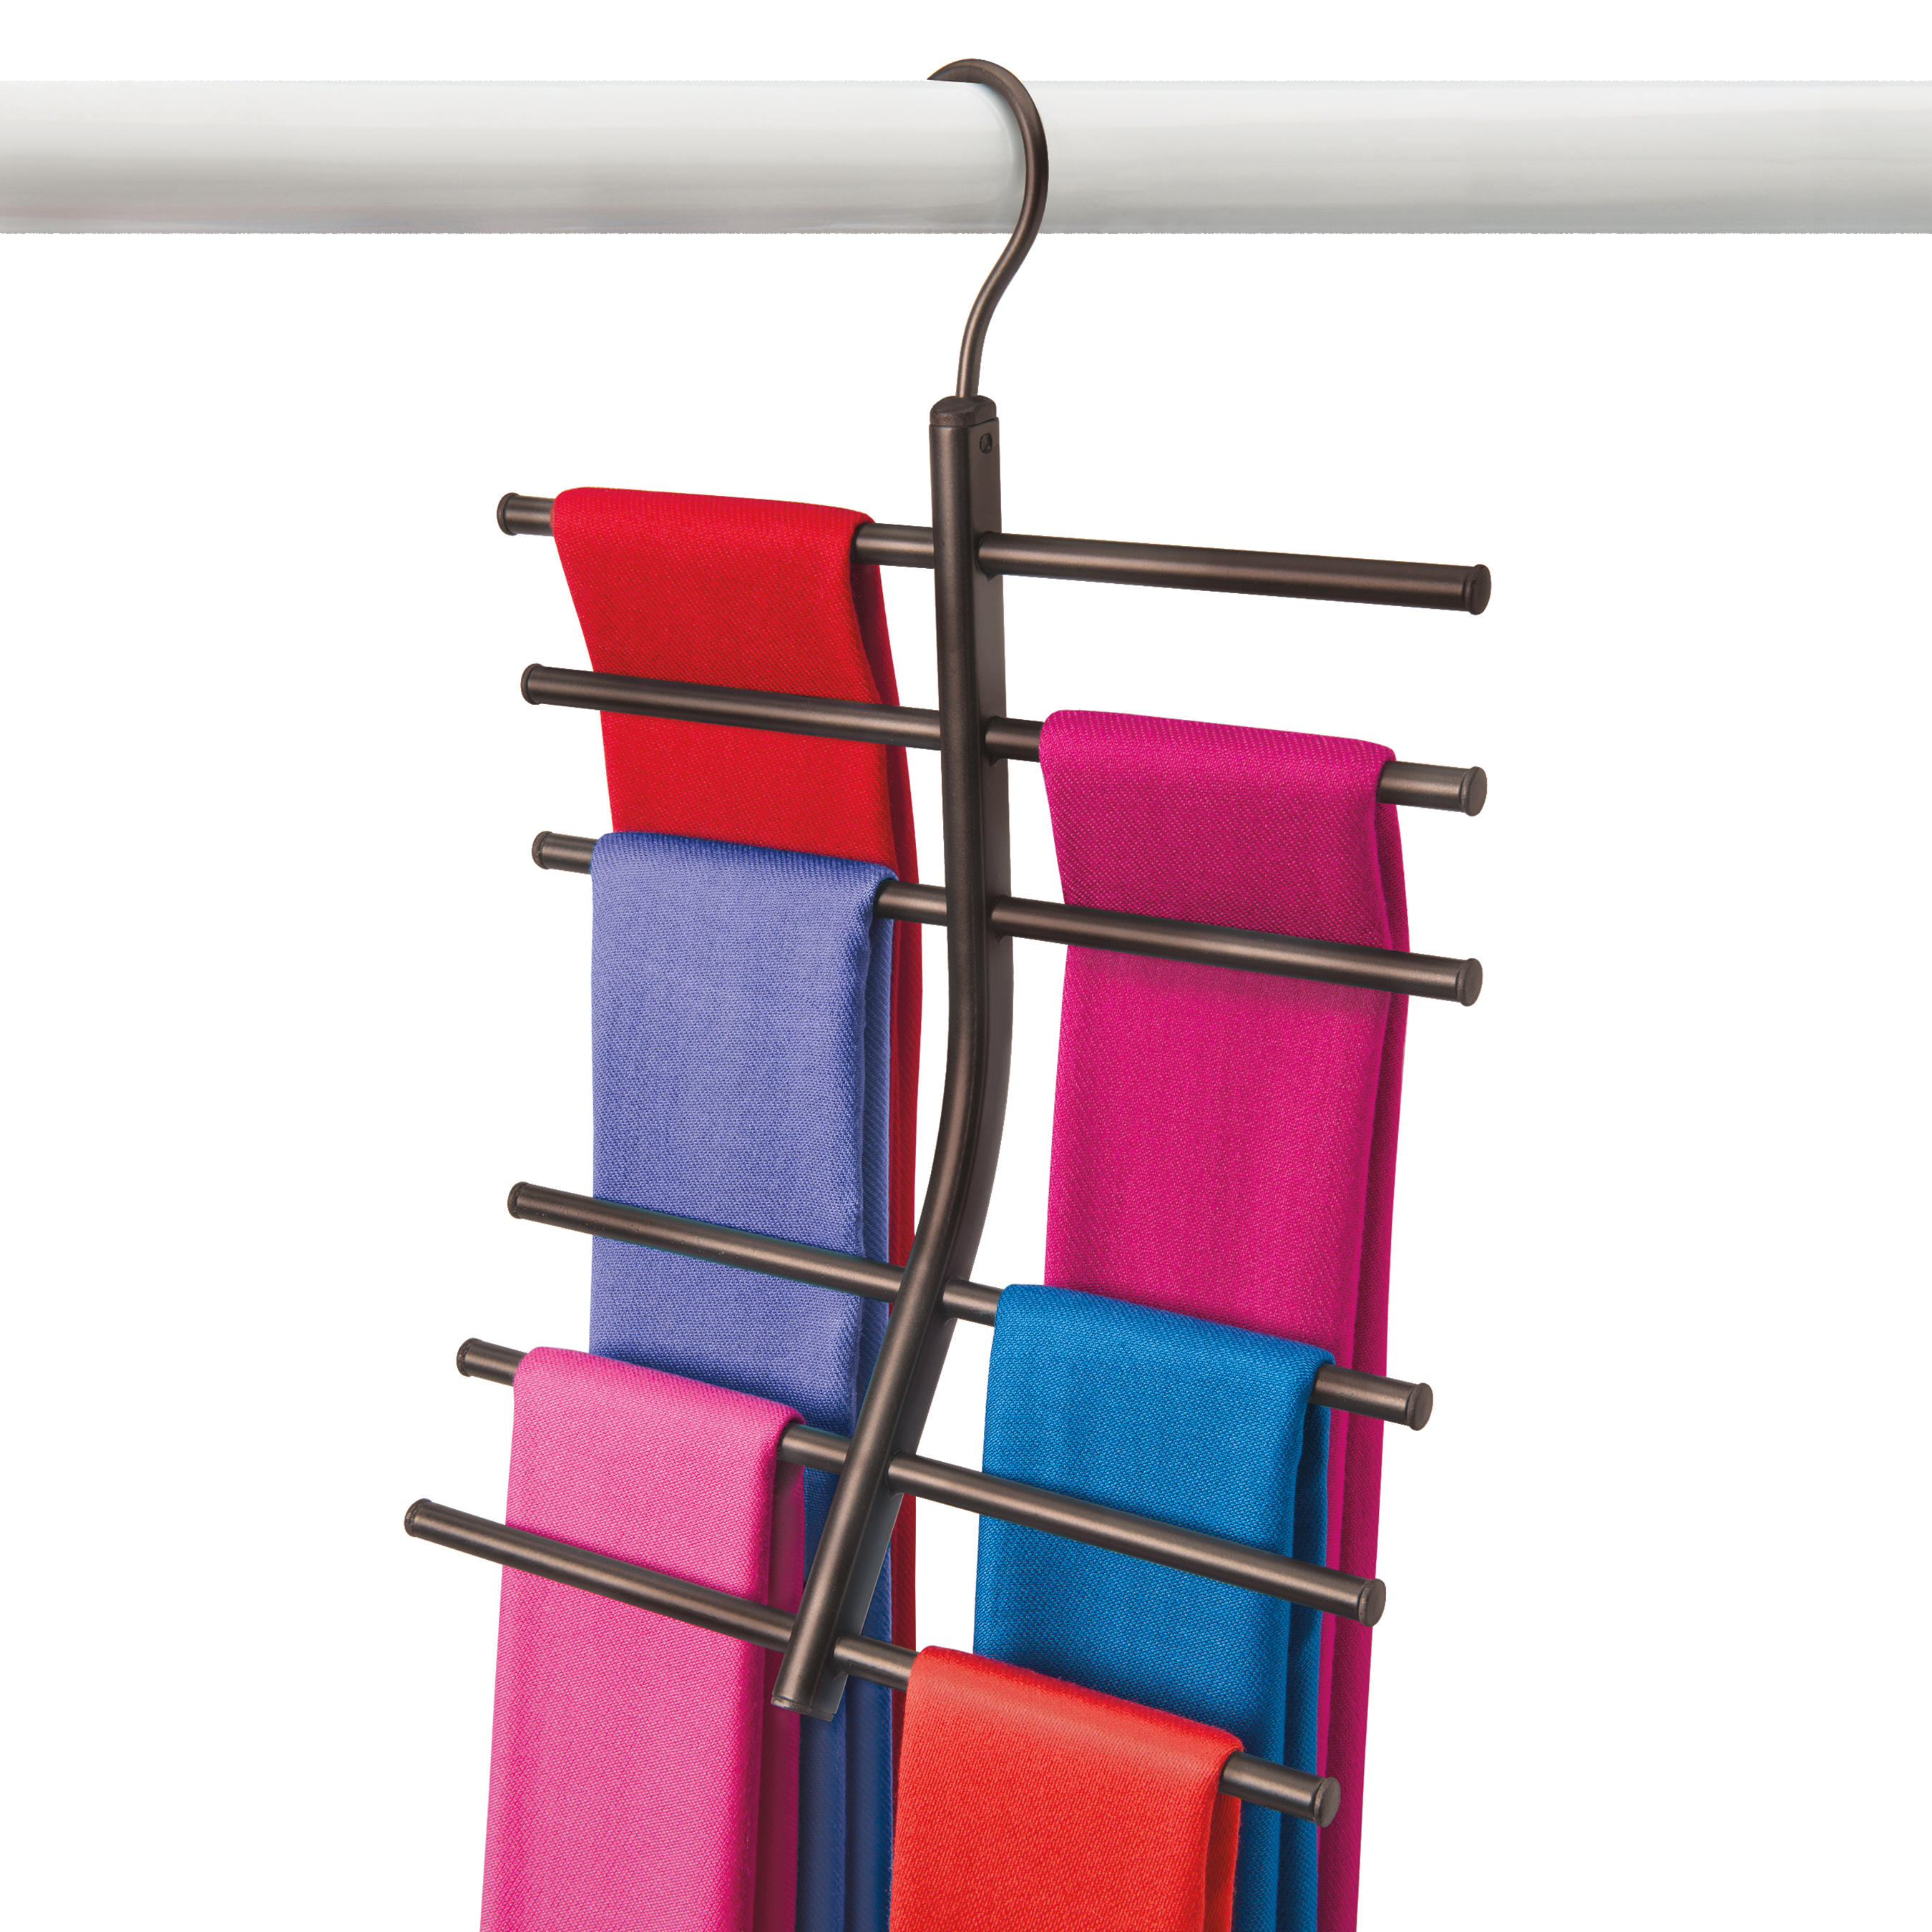 Curved Closet Rod Fascinating The Curved Tiered Design Keeps Scarves Separate And Wrinklefree Inspiration Design